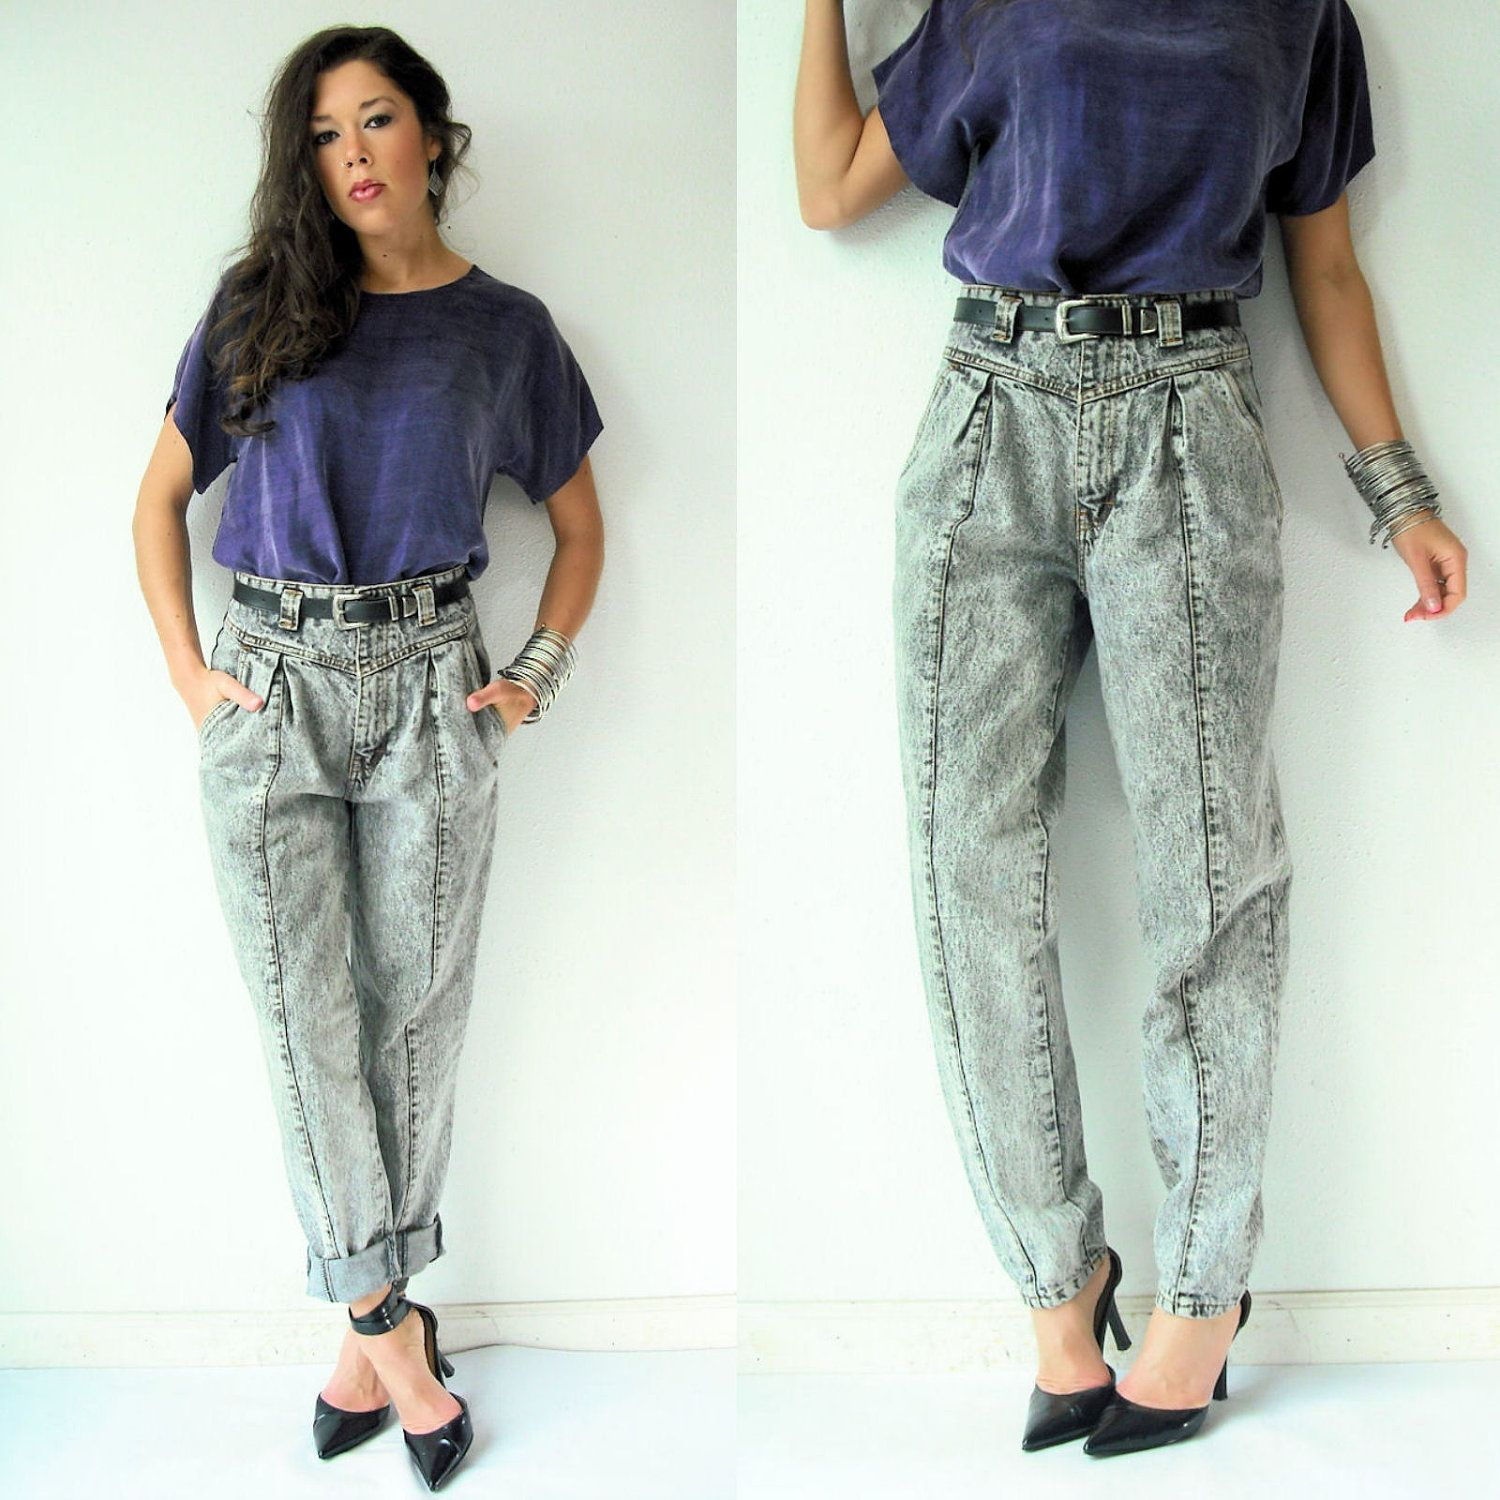 694332e70d23 Image detail for -Gray Acid Wash 80s Vintage Jordache Jeans   High Waist  Tapered Denim .